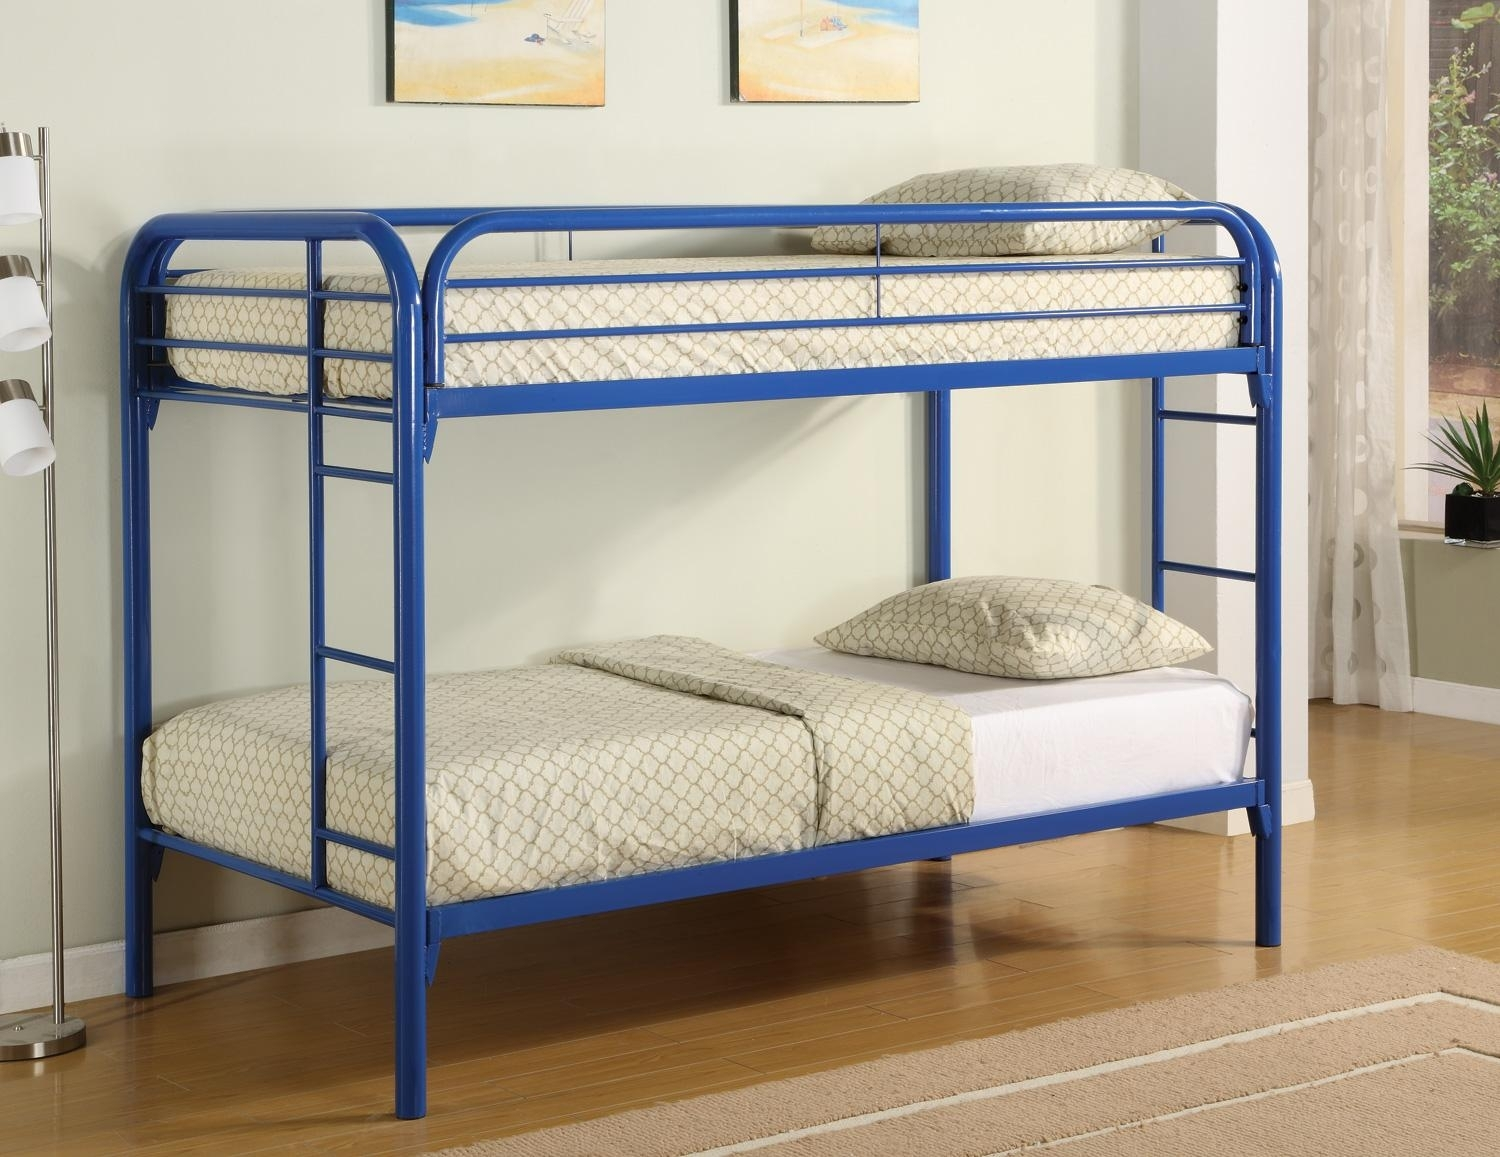 Bunk Beds For Small Rooms | Bunk Bed Combinations | Twin Bed Space Saver